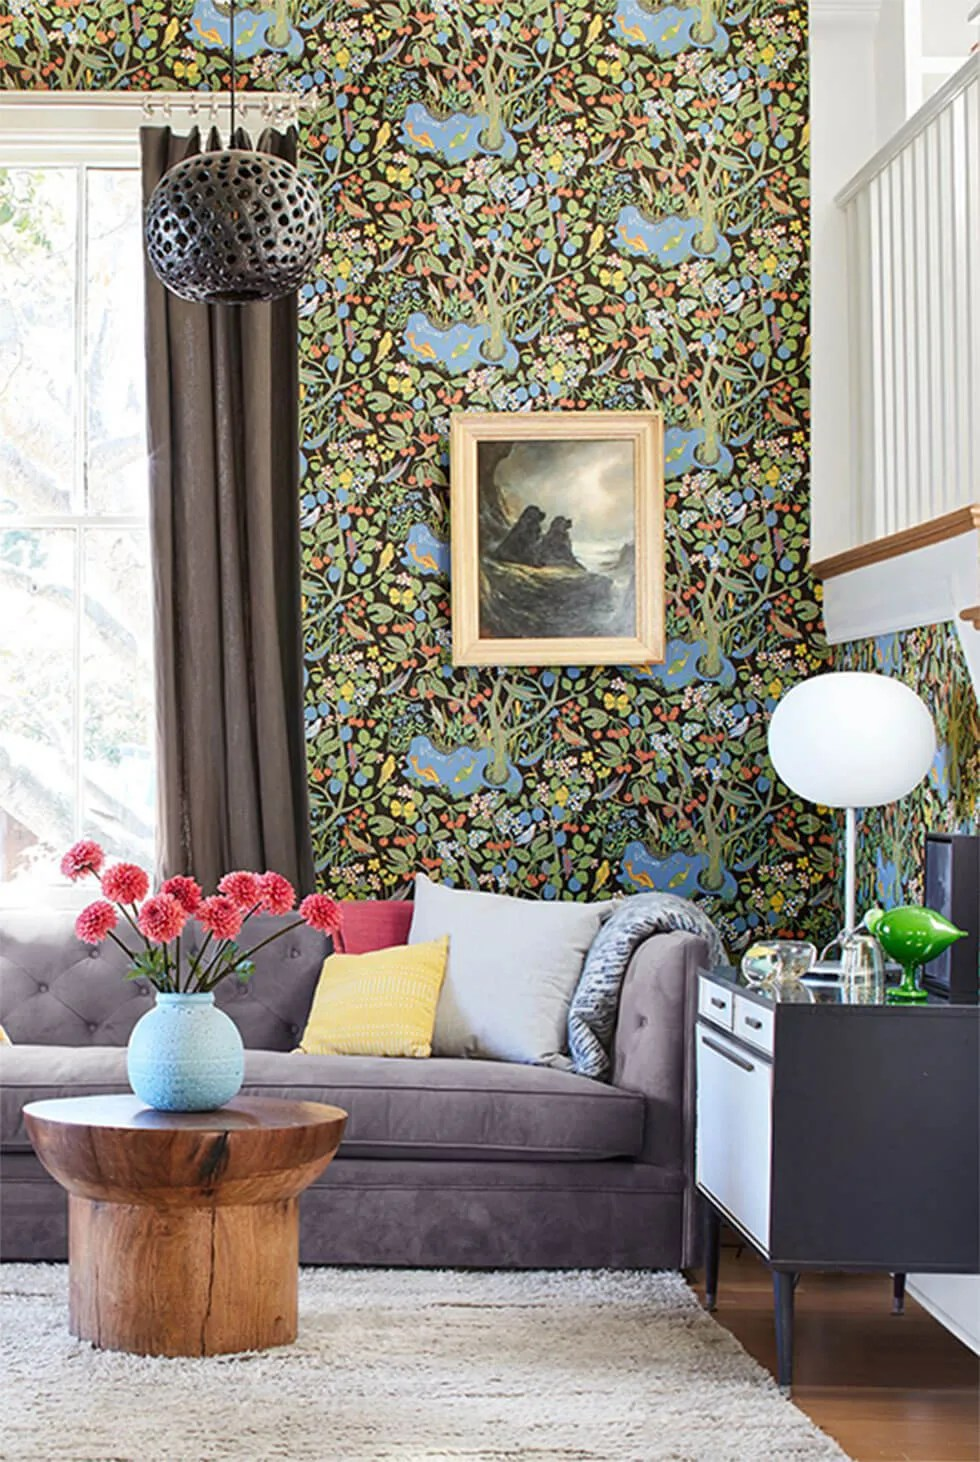 9 Chic Ideas To Style A Feature Wall In The Living Room Furniture Choice